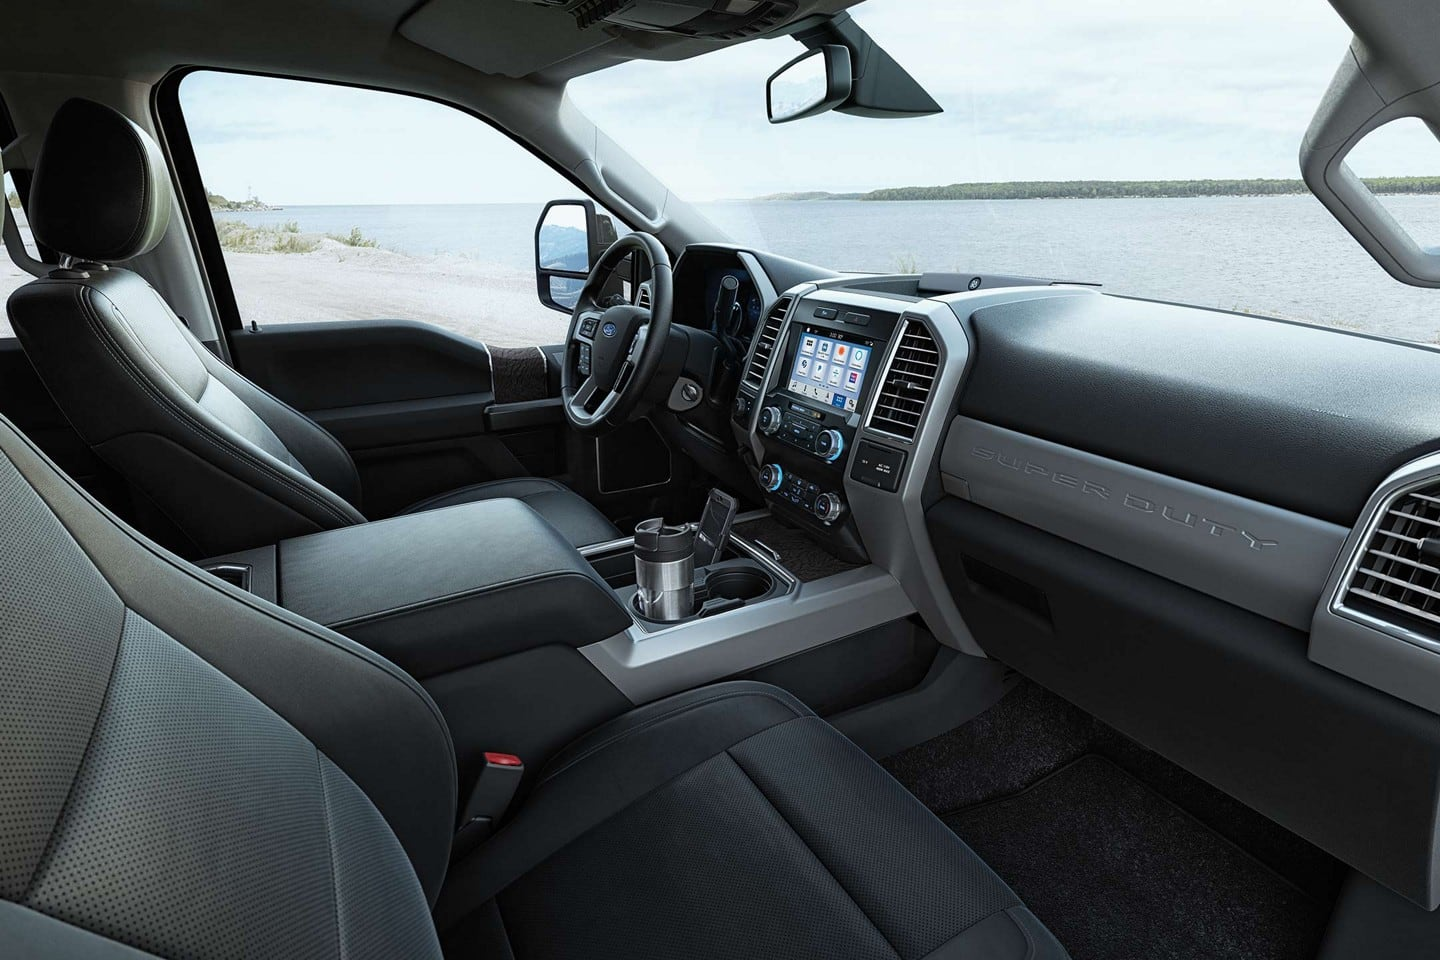 Interior of the 2019 F-250 Super Duty